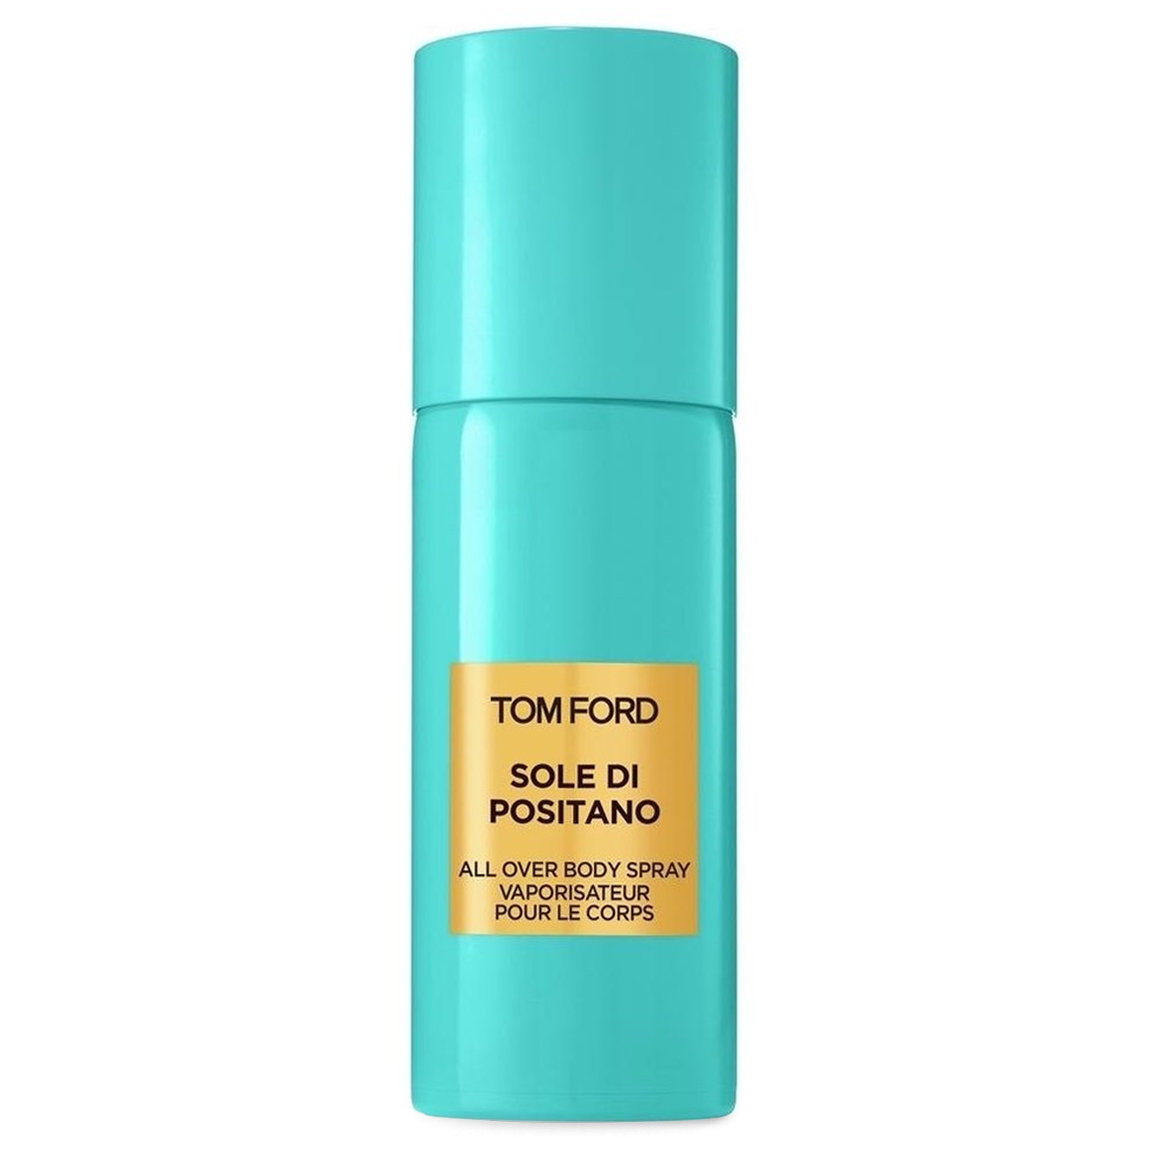 TOM FORD Sole di Positano All Over Body Spray alternative view 1 - product swatch.